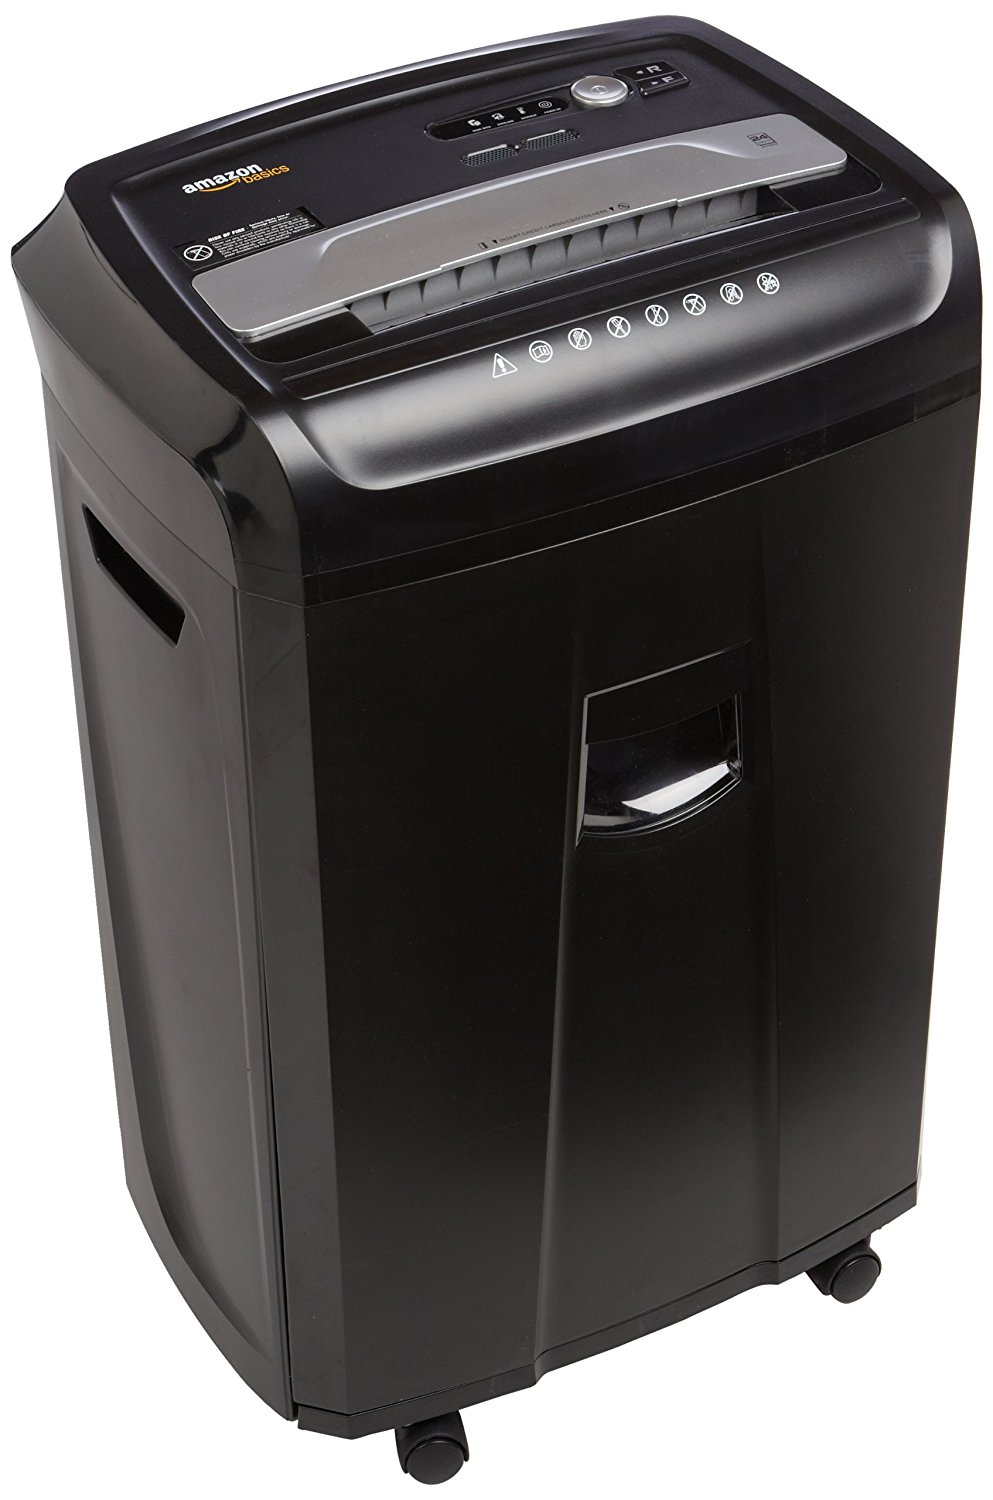 amazonbasics shredder - Paper Shredders Ratings